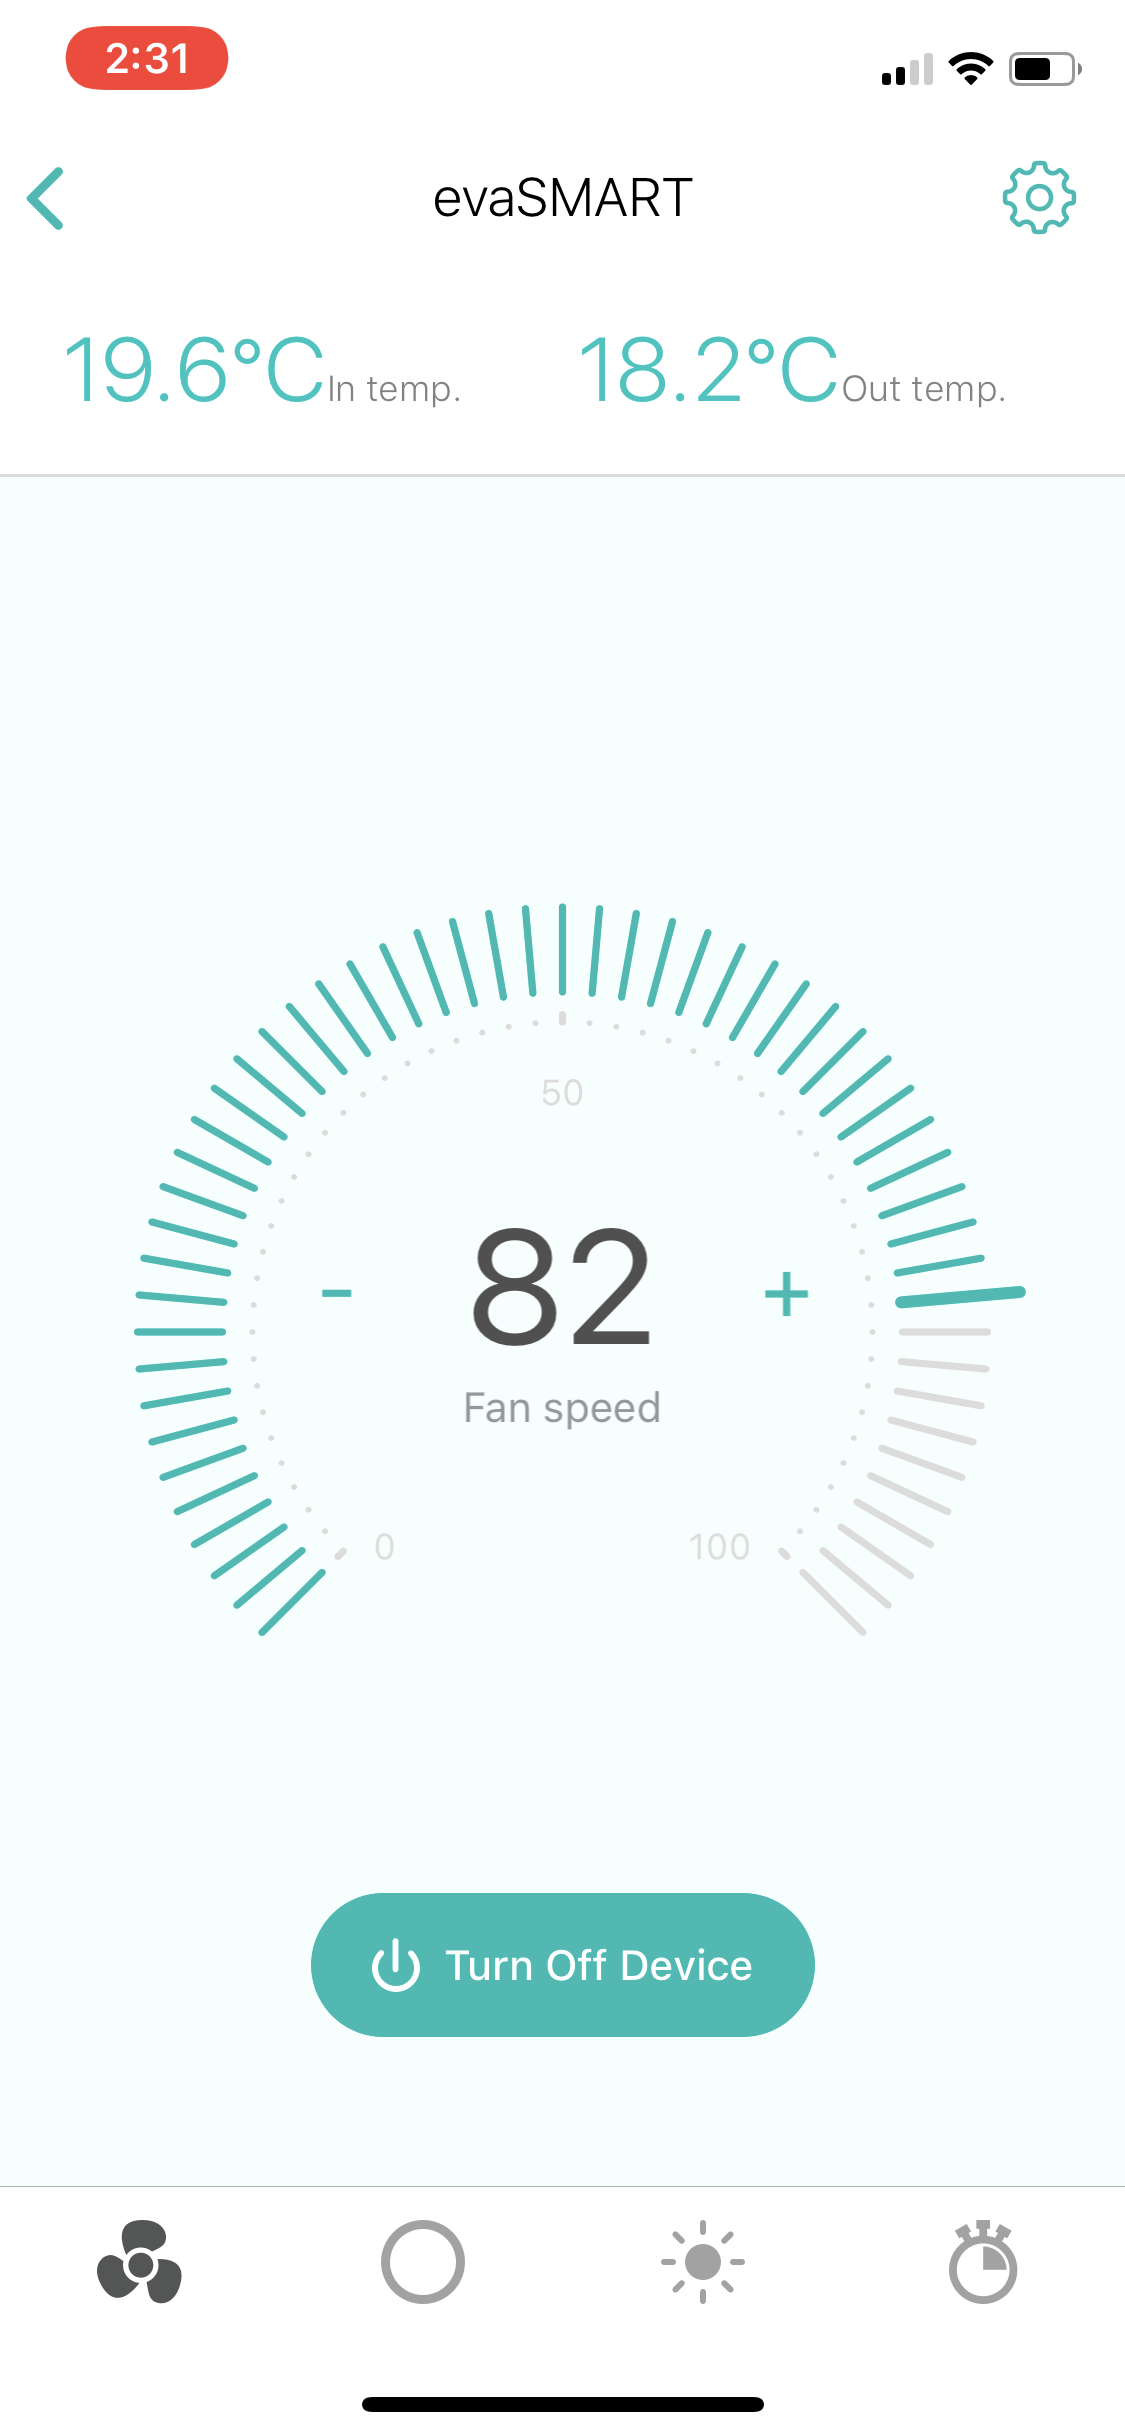 evaSMART app fan speed